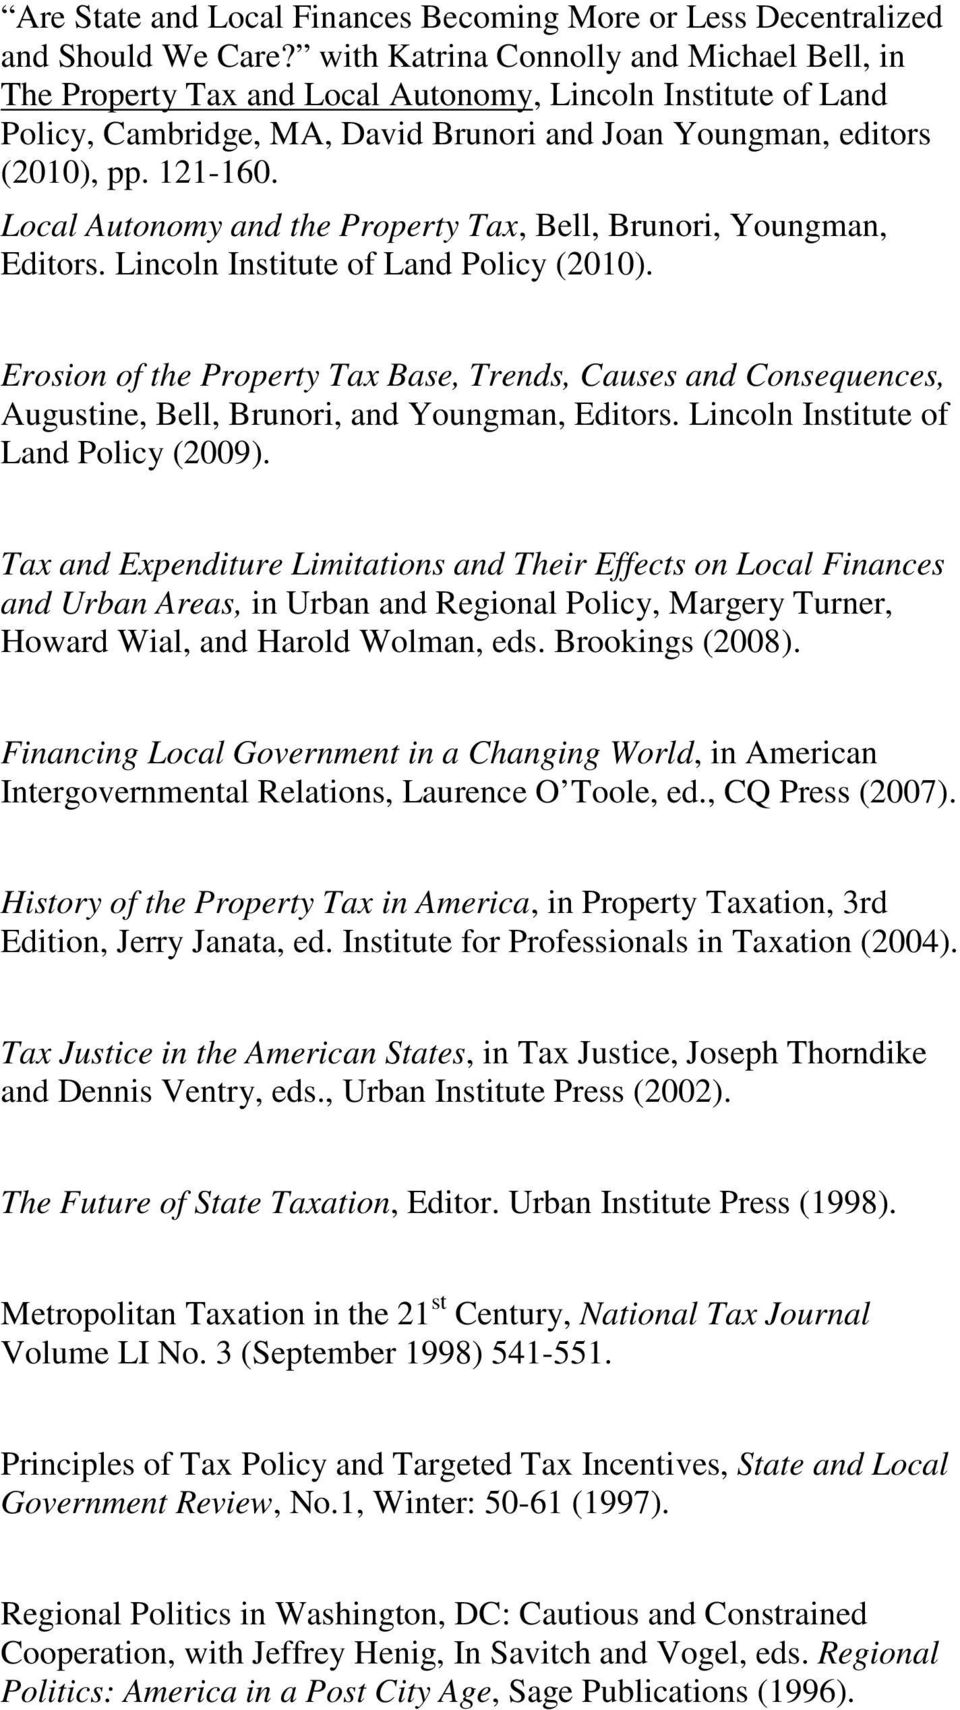 Local Autonomy and the Property Tax, Bell, Brunori, Youngman, Editors. Lincoln Institute of Land Policy (2010).